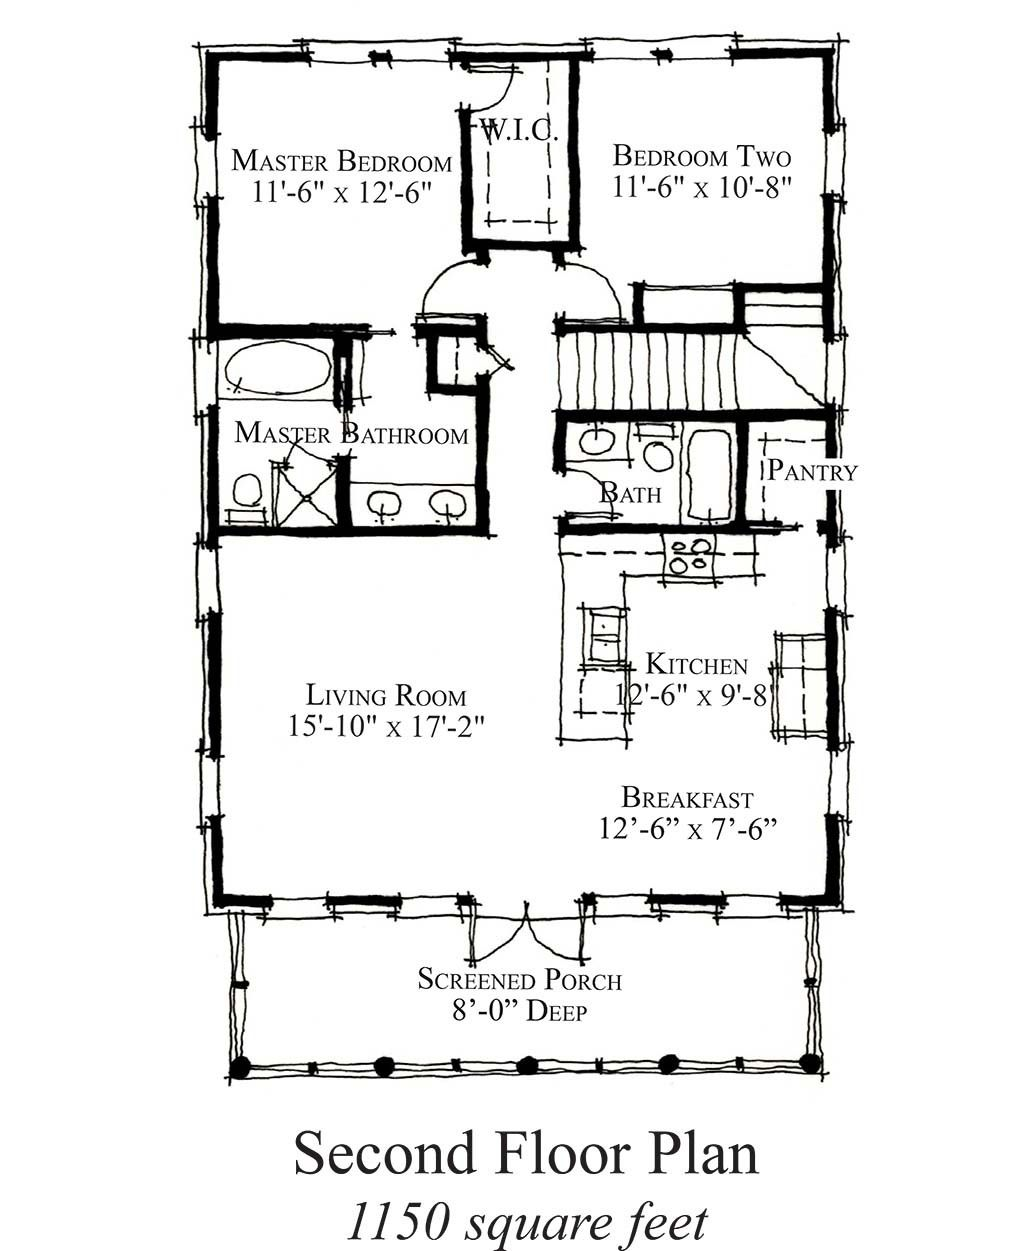 Country barn floor plan living space above stalls 30x40 for 30x40 floor plan